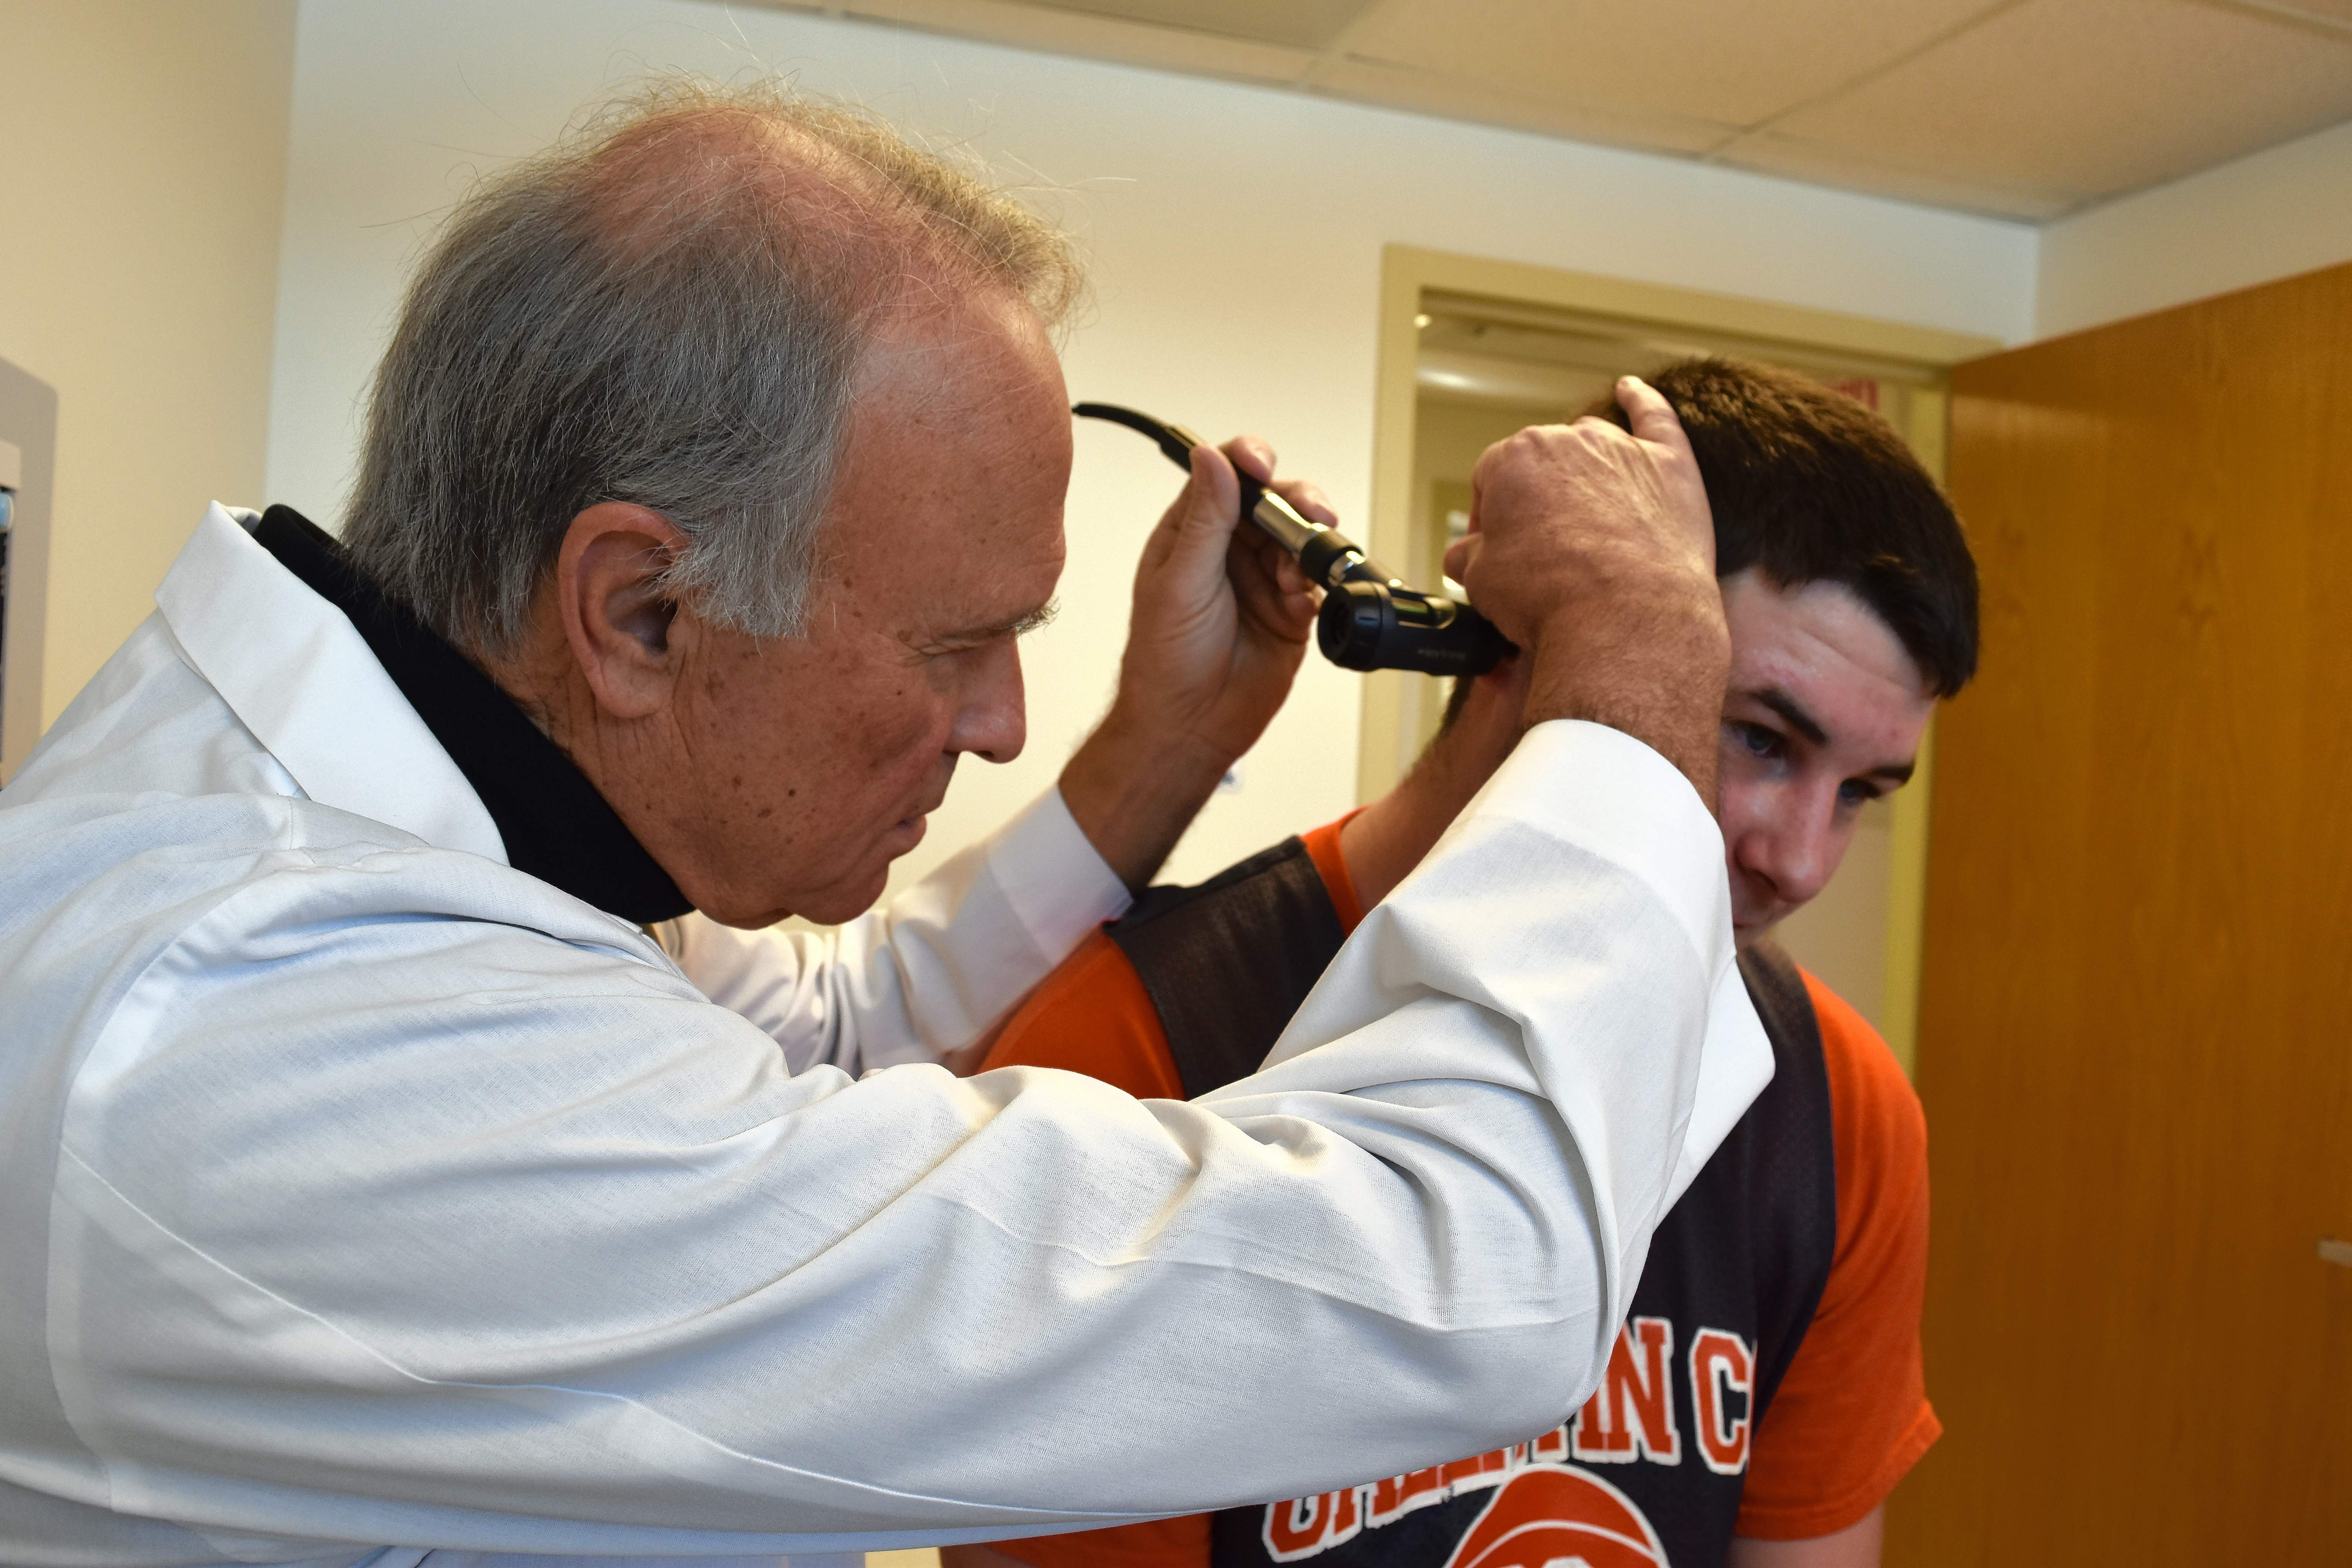 Dr. Tom Martin gives a demonstration of an ear exam at the Gallatin County Wellness Center. The clinic, attached to the west side of Gallatin County High School, is available for patients who need to see a doctor.